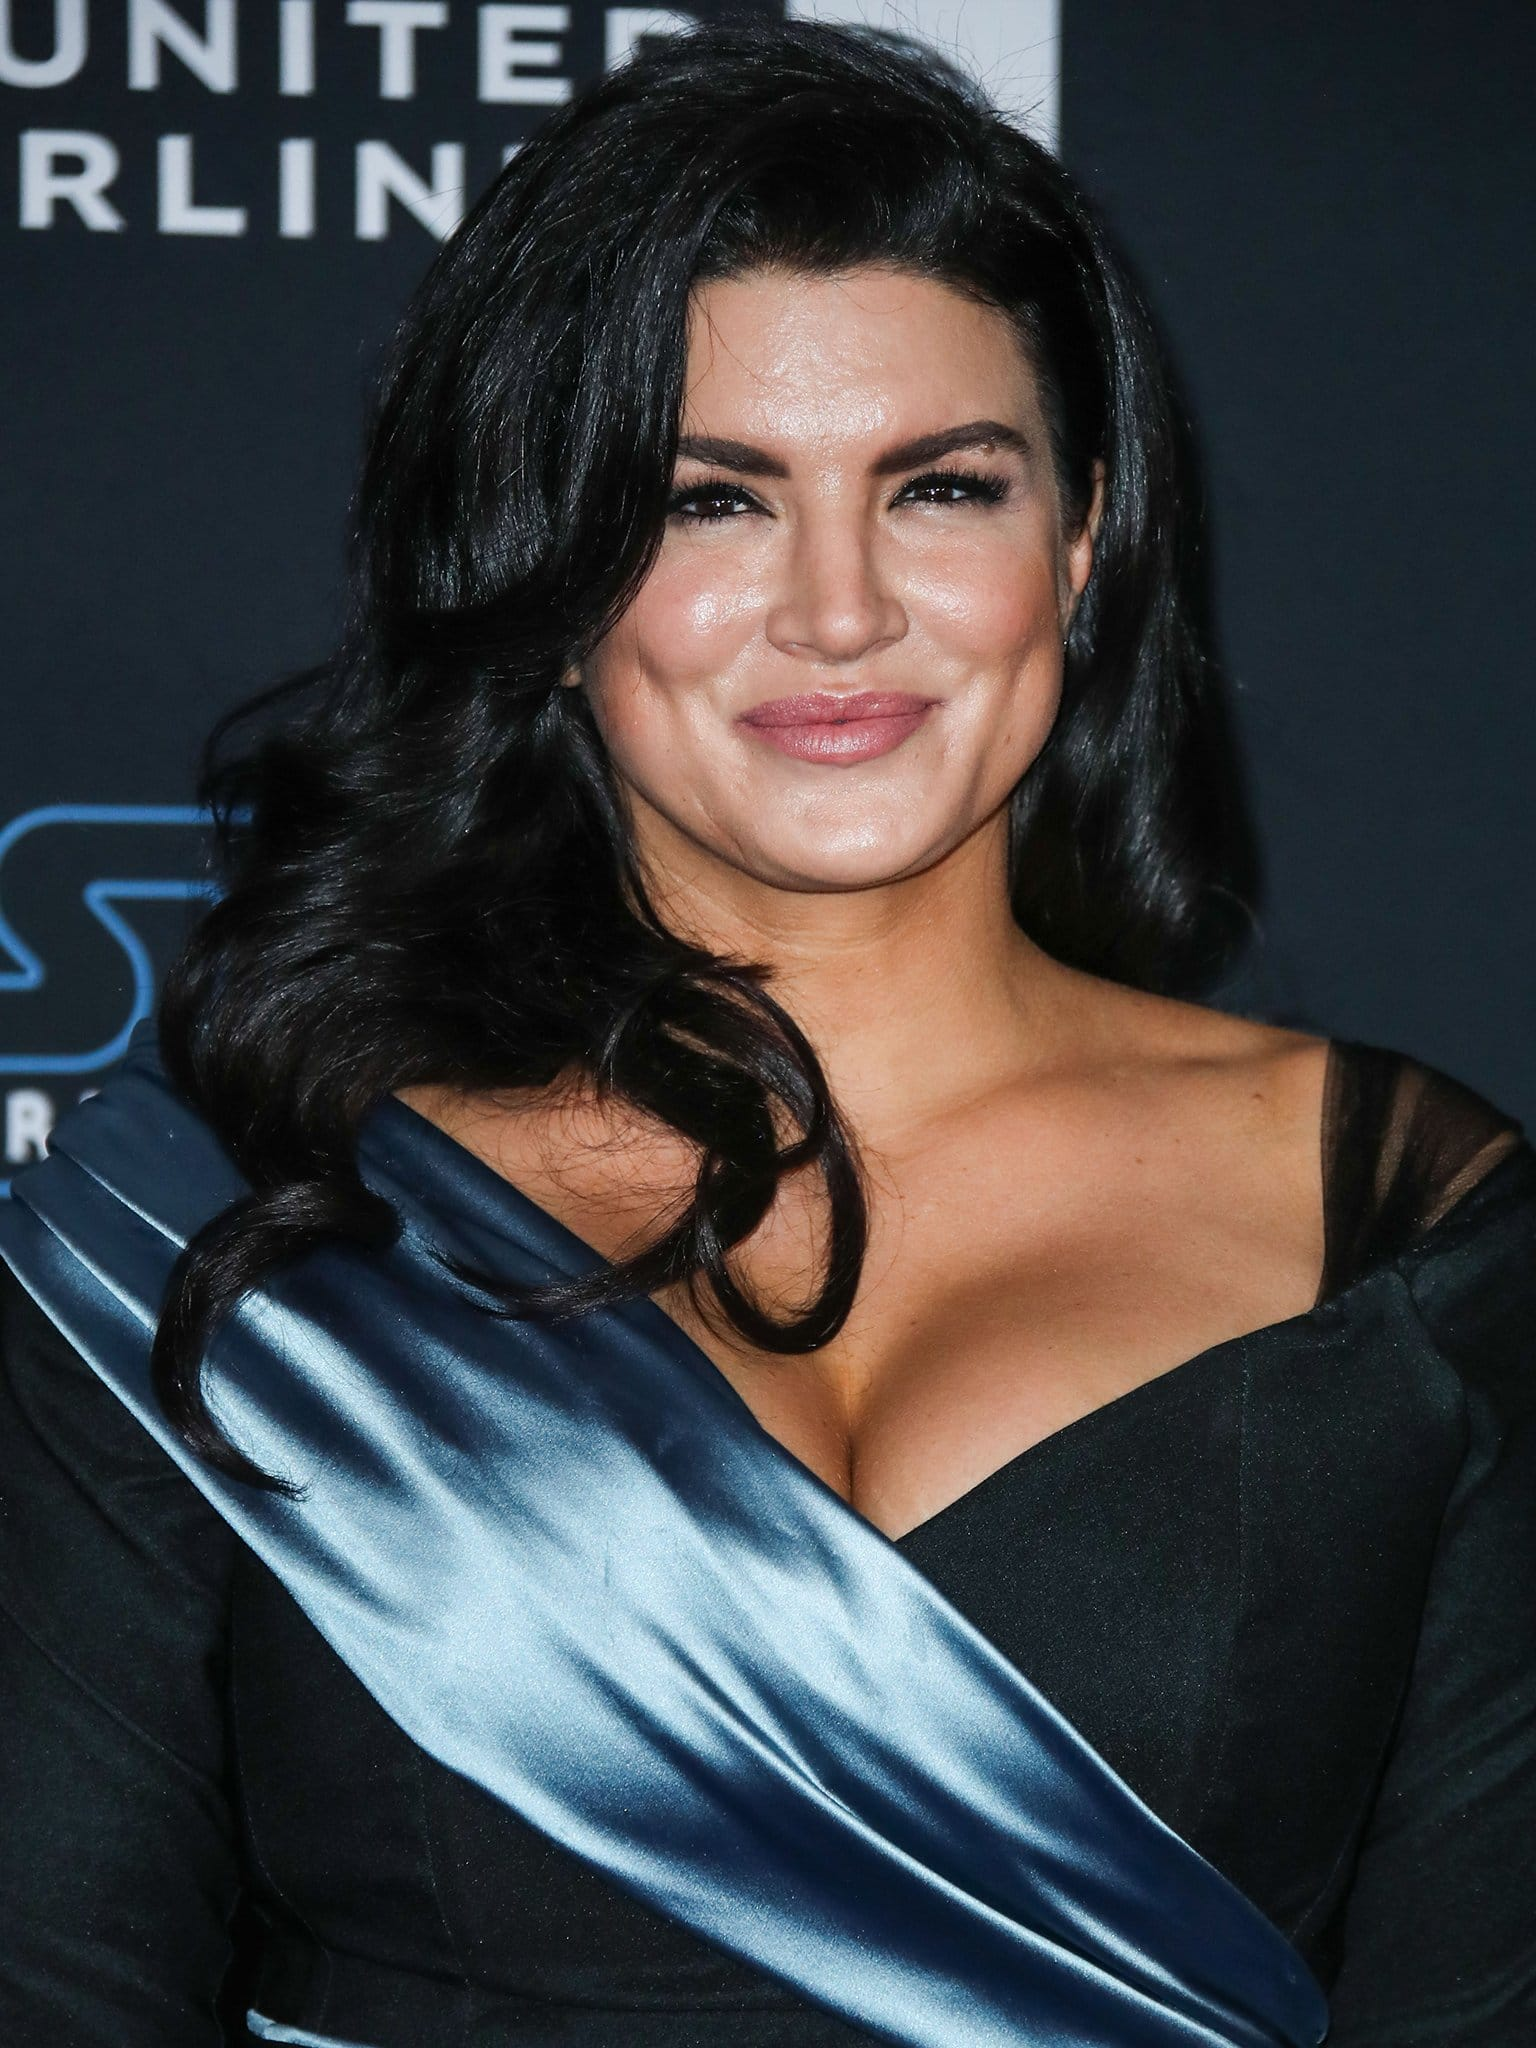 Gina Joy Carano at the world premiere of Disney's Star Wars: The Rise Of Skywalker